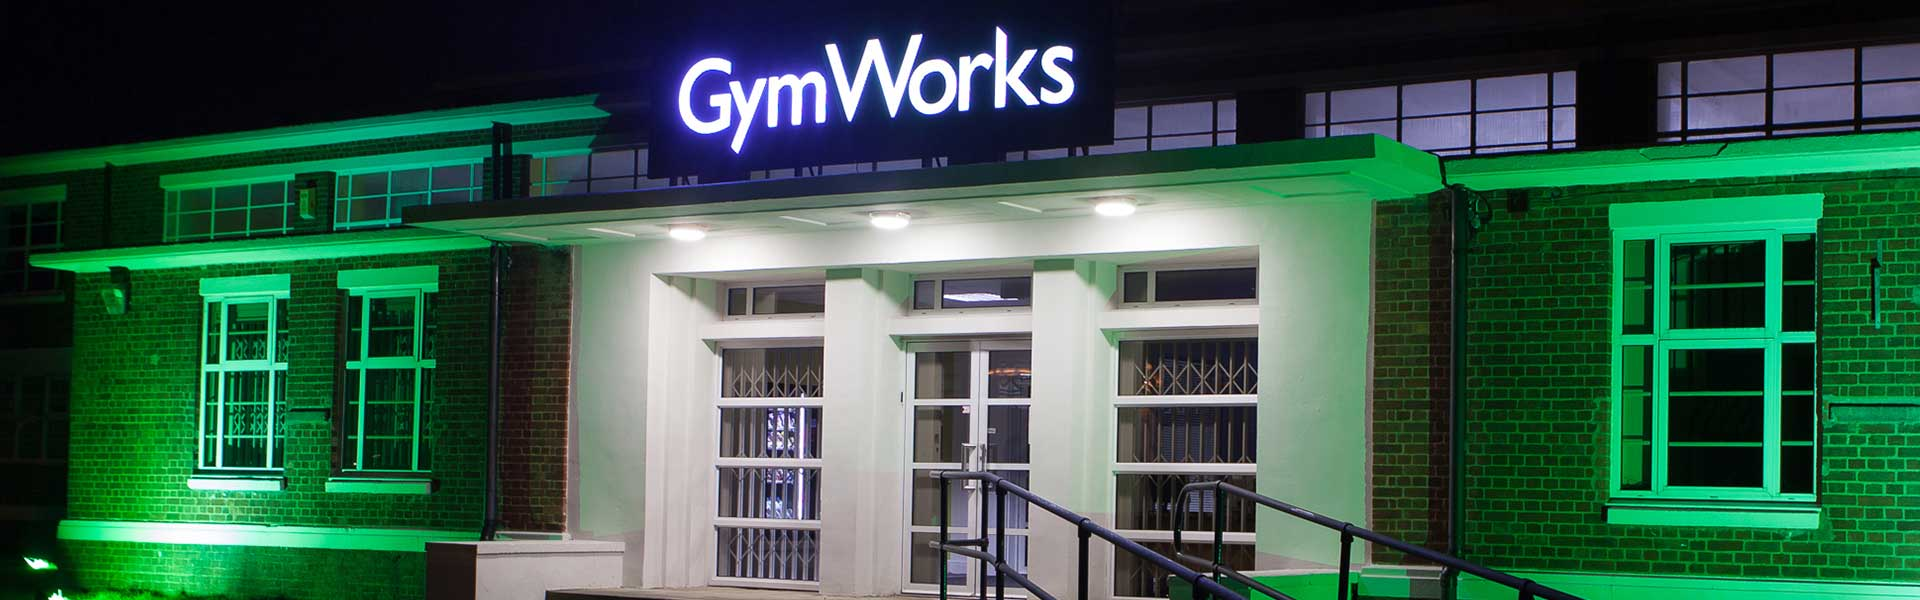 PhysioGo open in Gym Works Euxton